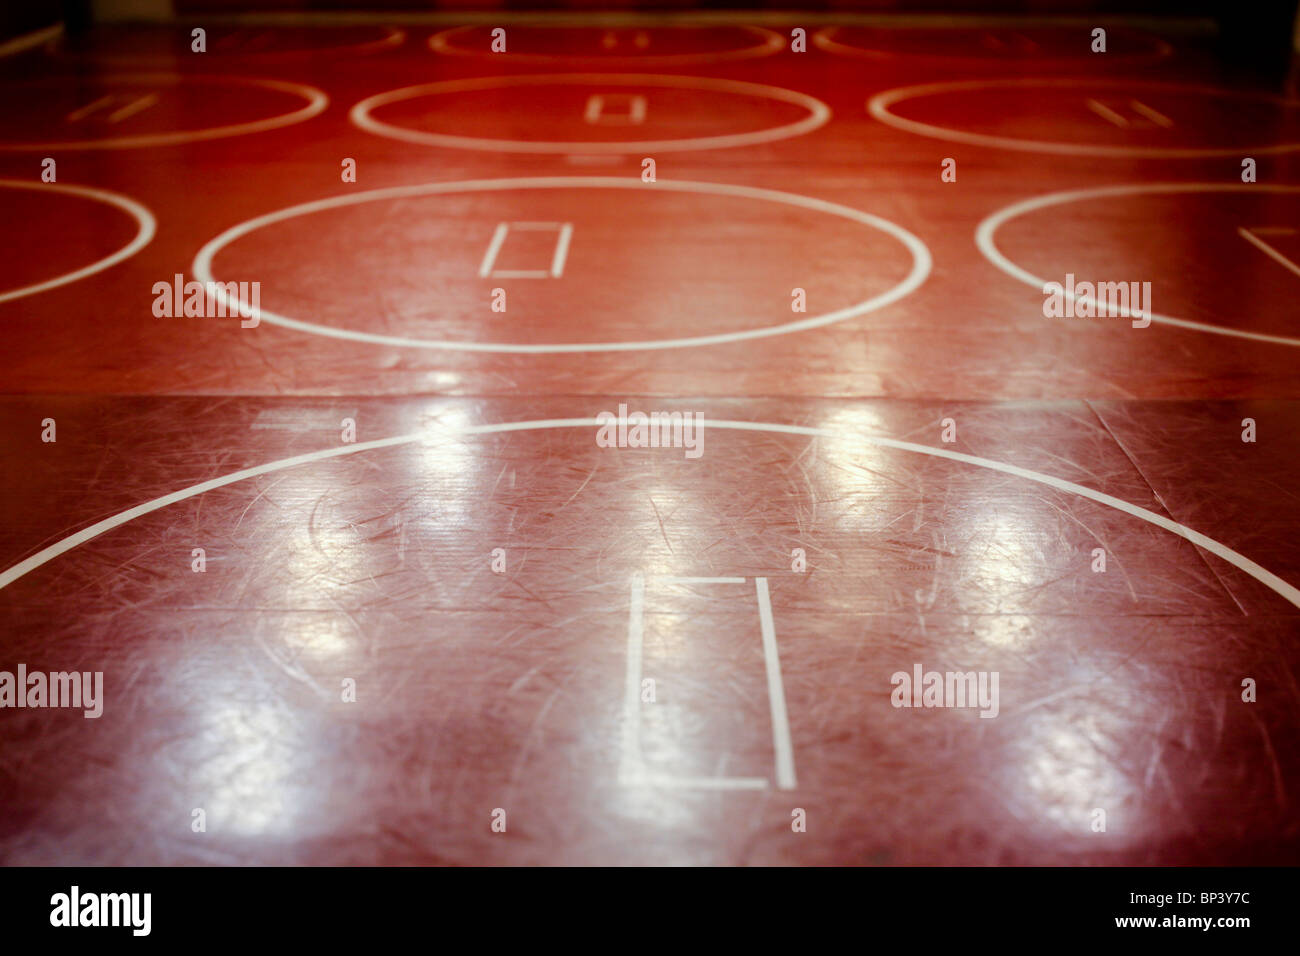 Well worn red school wrestling mat in a gym. Stock Photo